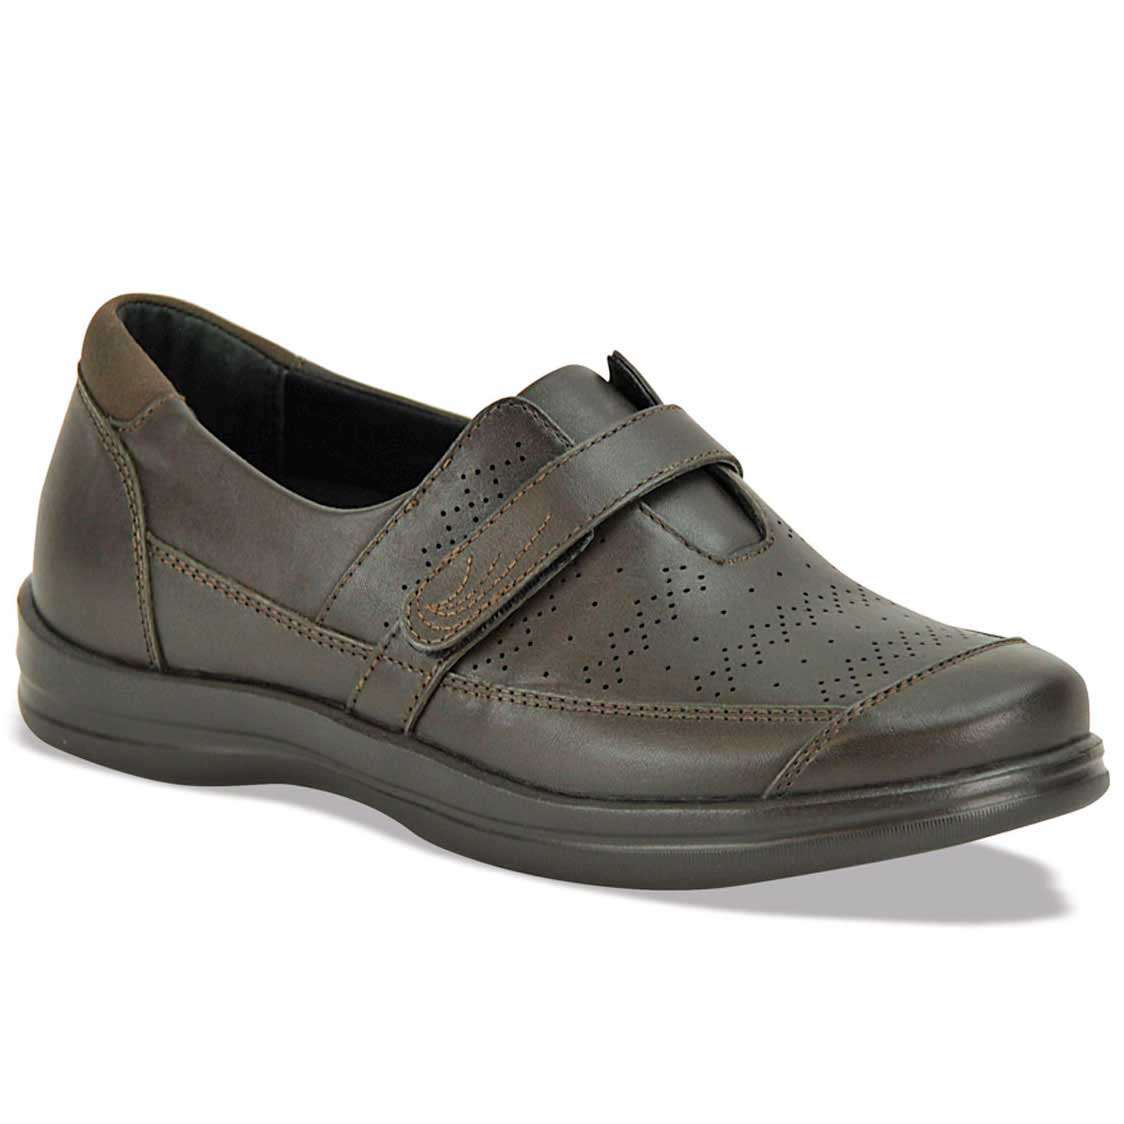 Apex A705 - Casual Walking Shoe